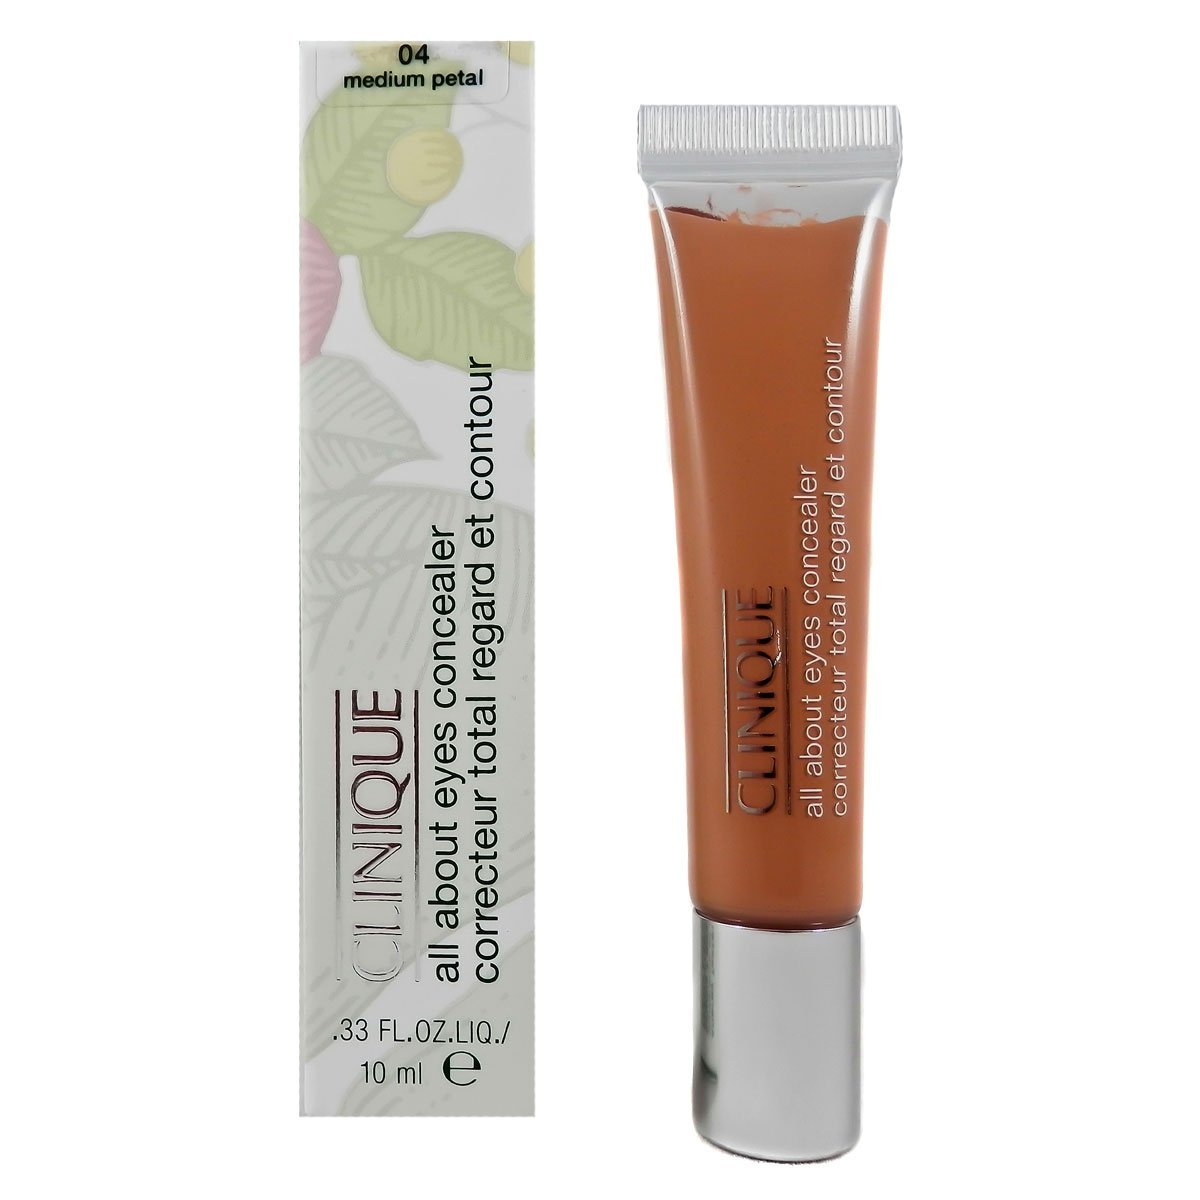 Clinique ALL ABOUT EYES concealer 04 med petal 10 ml AEP01404 CLI00035_-10